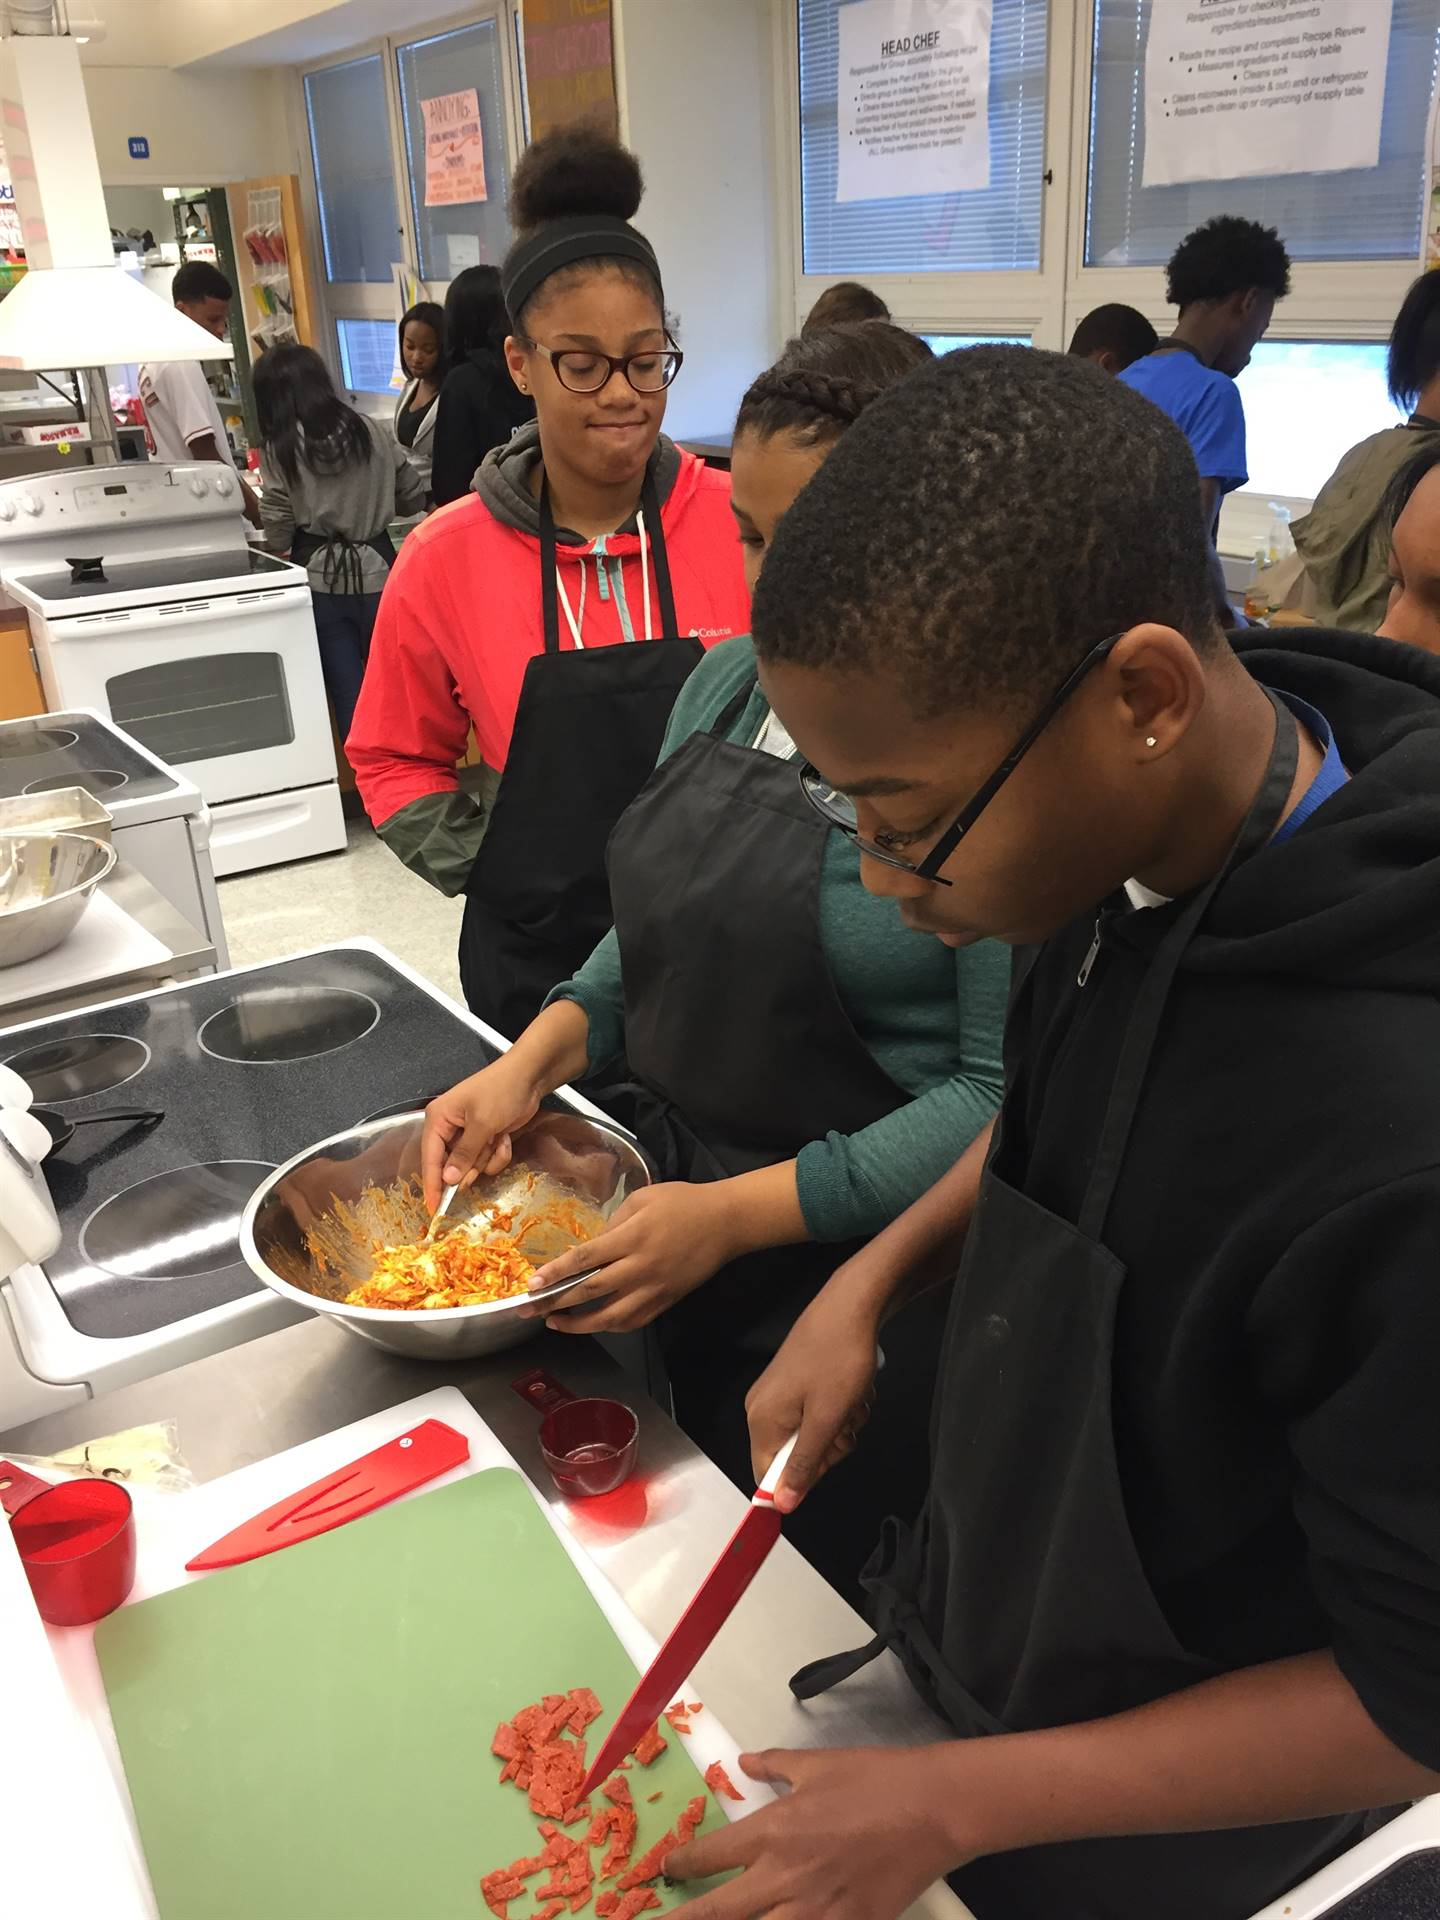 food tech students making pizza bubble bread